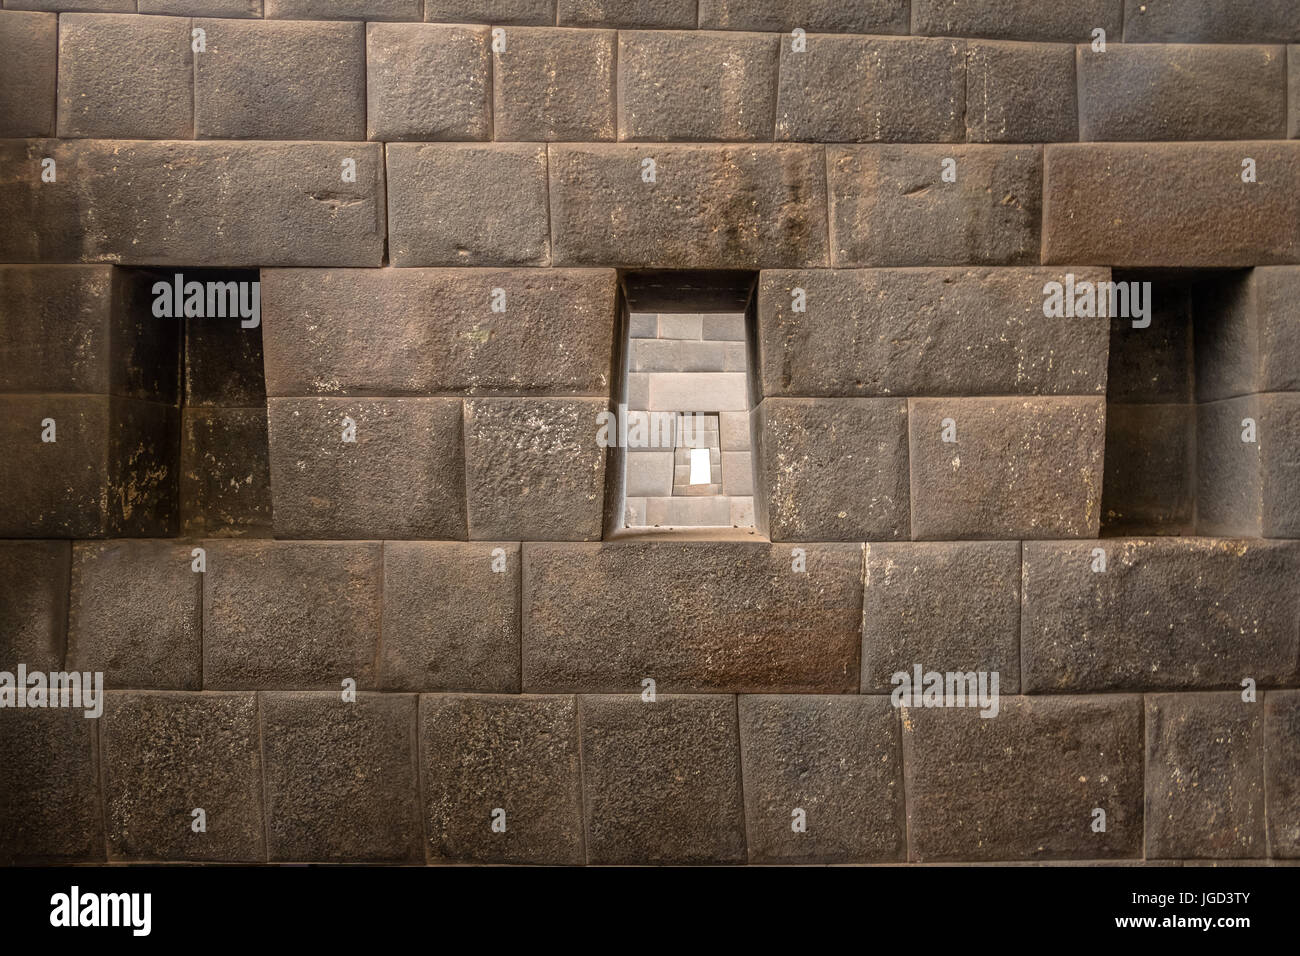 The three trapezoidal windows and Inca Wall of Rainbow Temple at Qoricancha Inca Ruins - Cusco, Peru - Stock Image